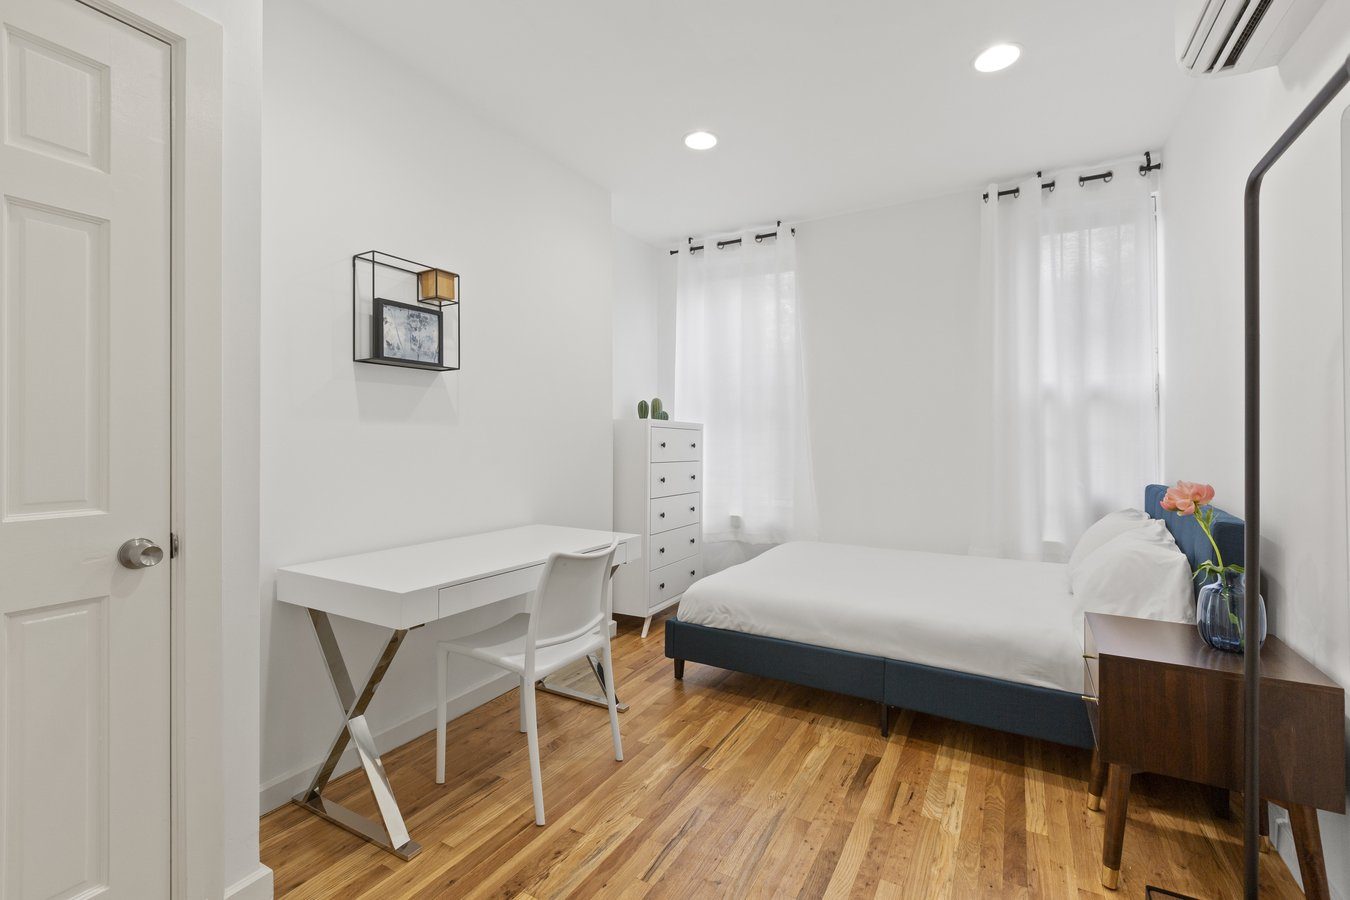 1 Bedroom 1 Bathroom Apartment for rent at Private Furnished Bedroom In Shared Apartment. Comfortable 4 Bed 2 Bath, Flexible Lease in New York, NY